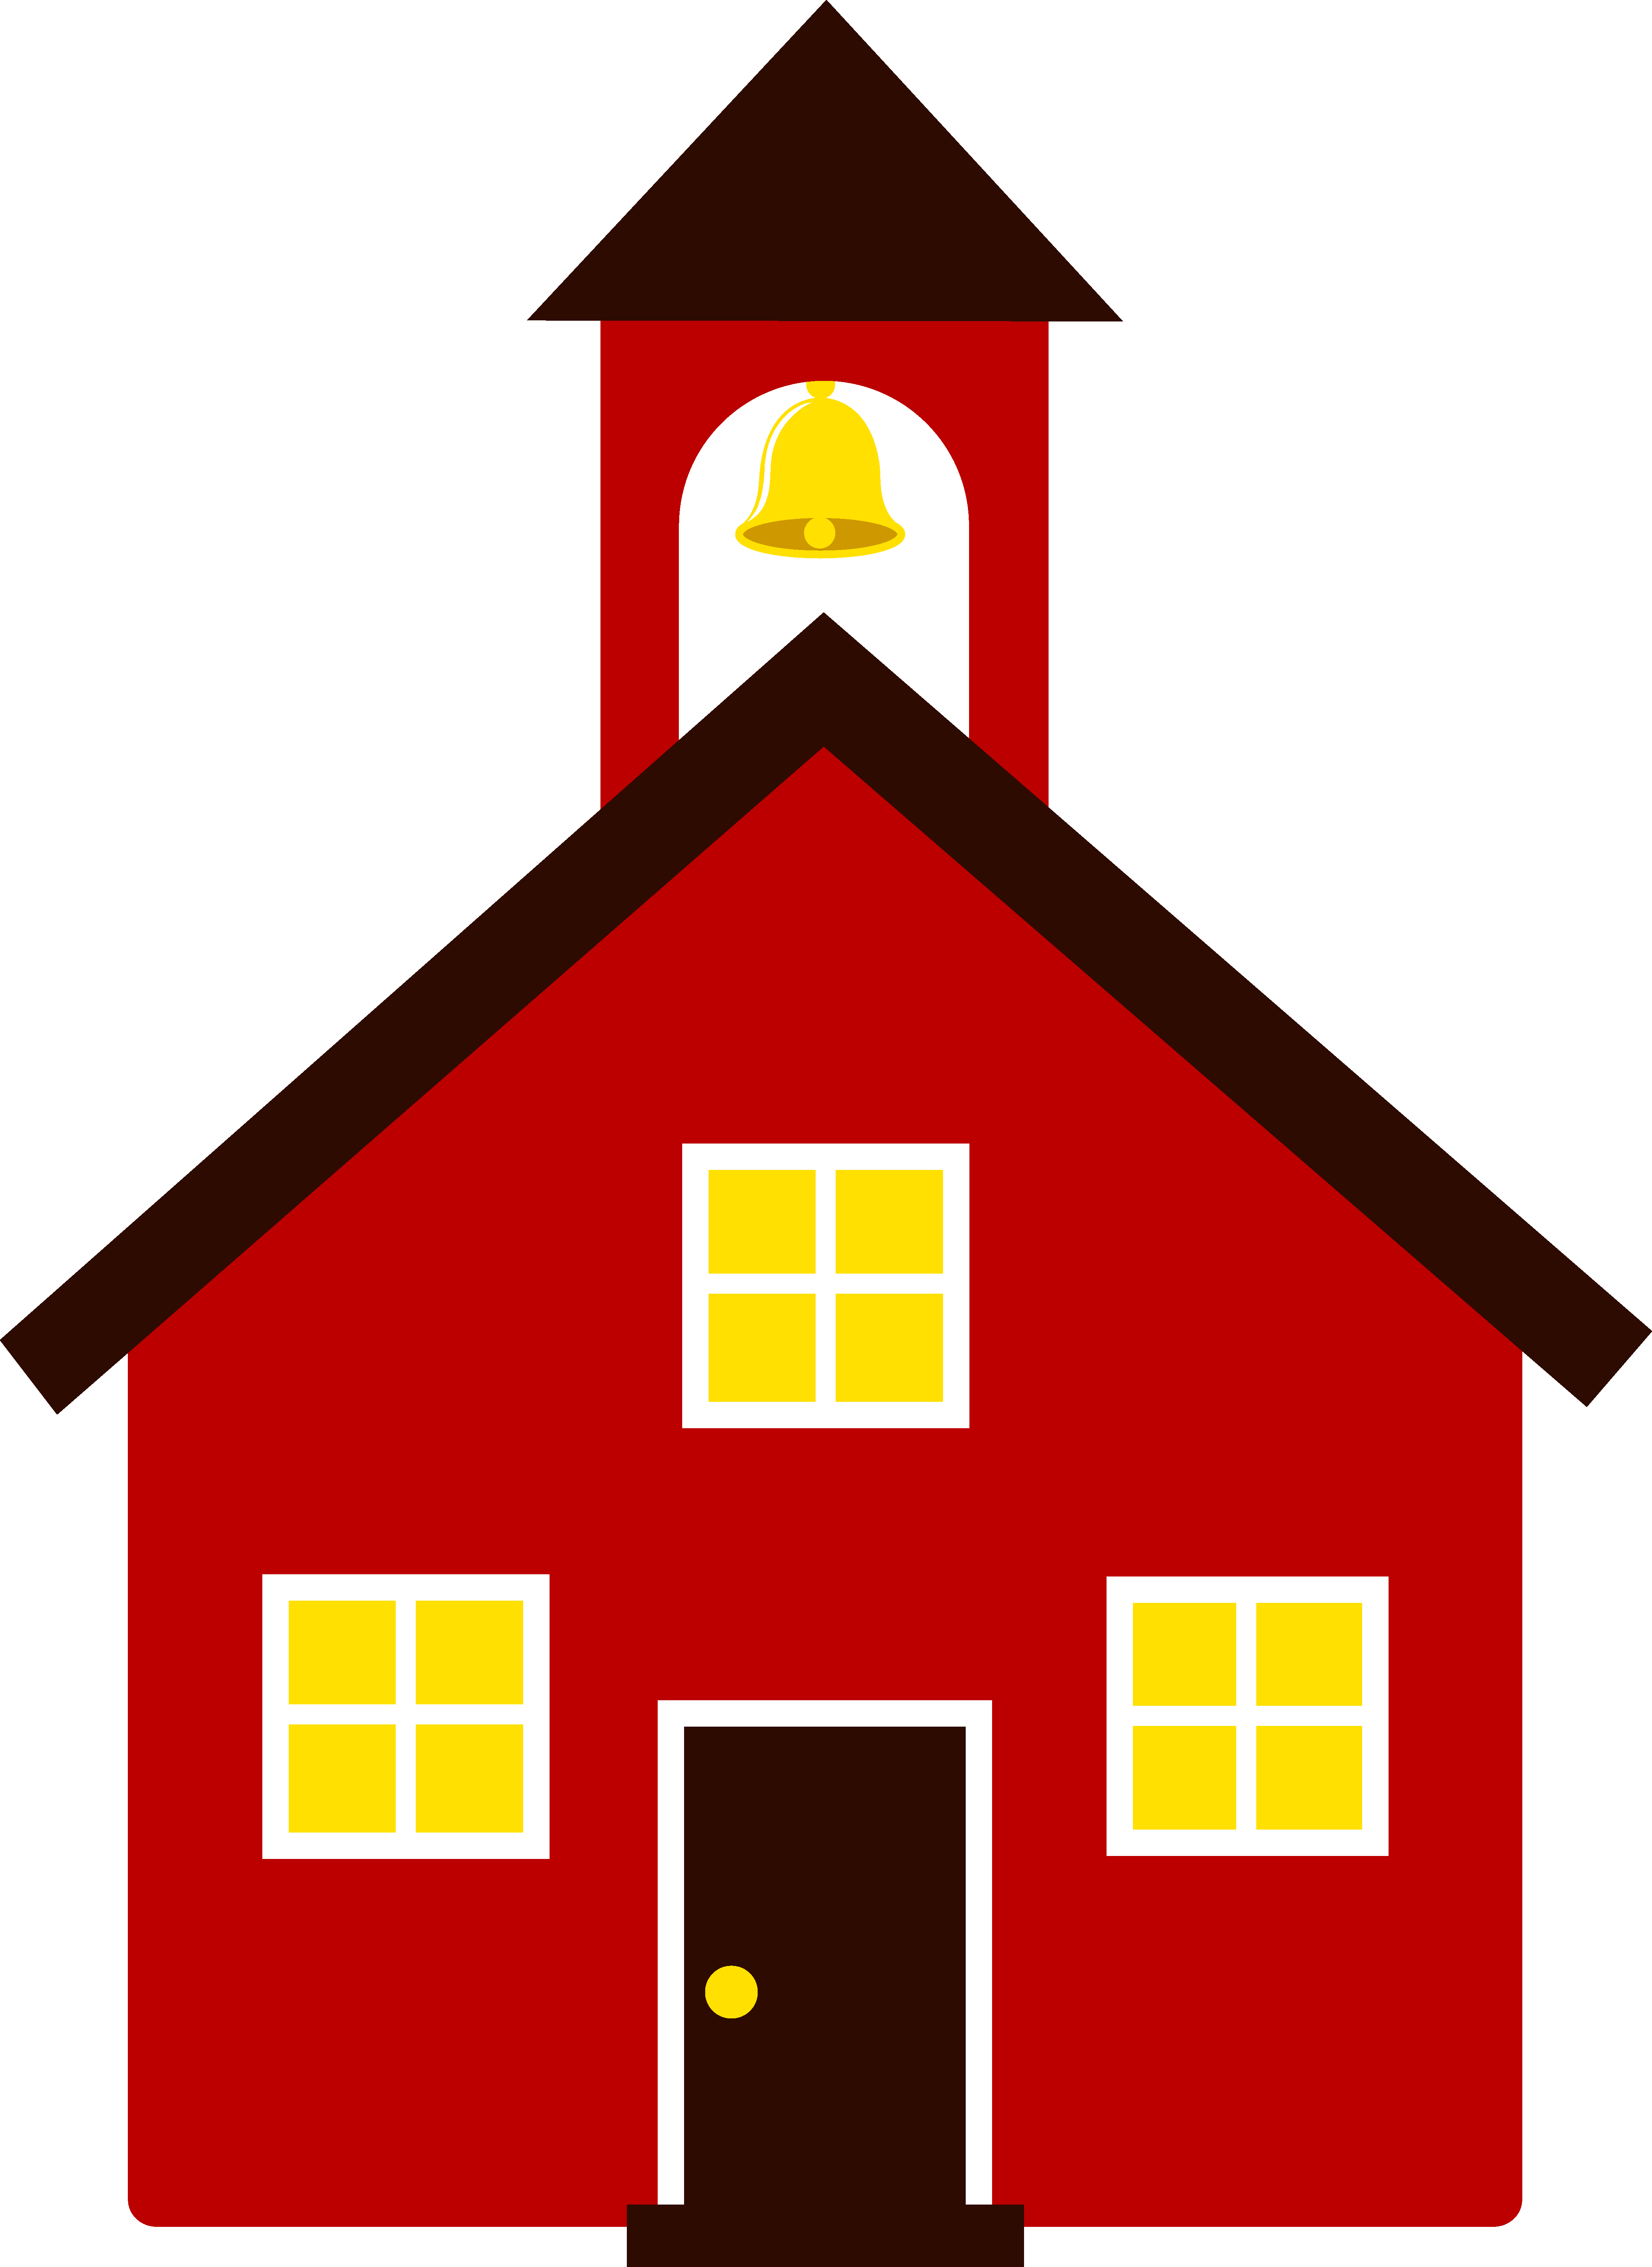 School house images clipart. Educational vector college graphic royalty free